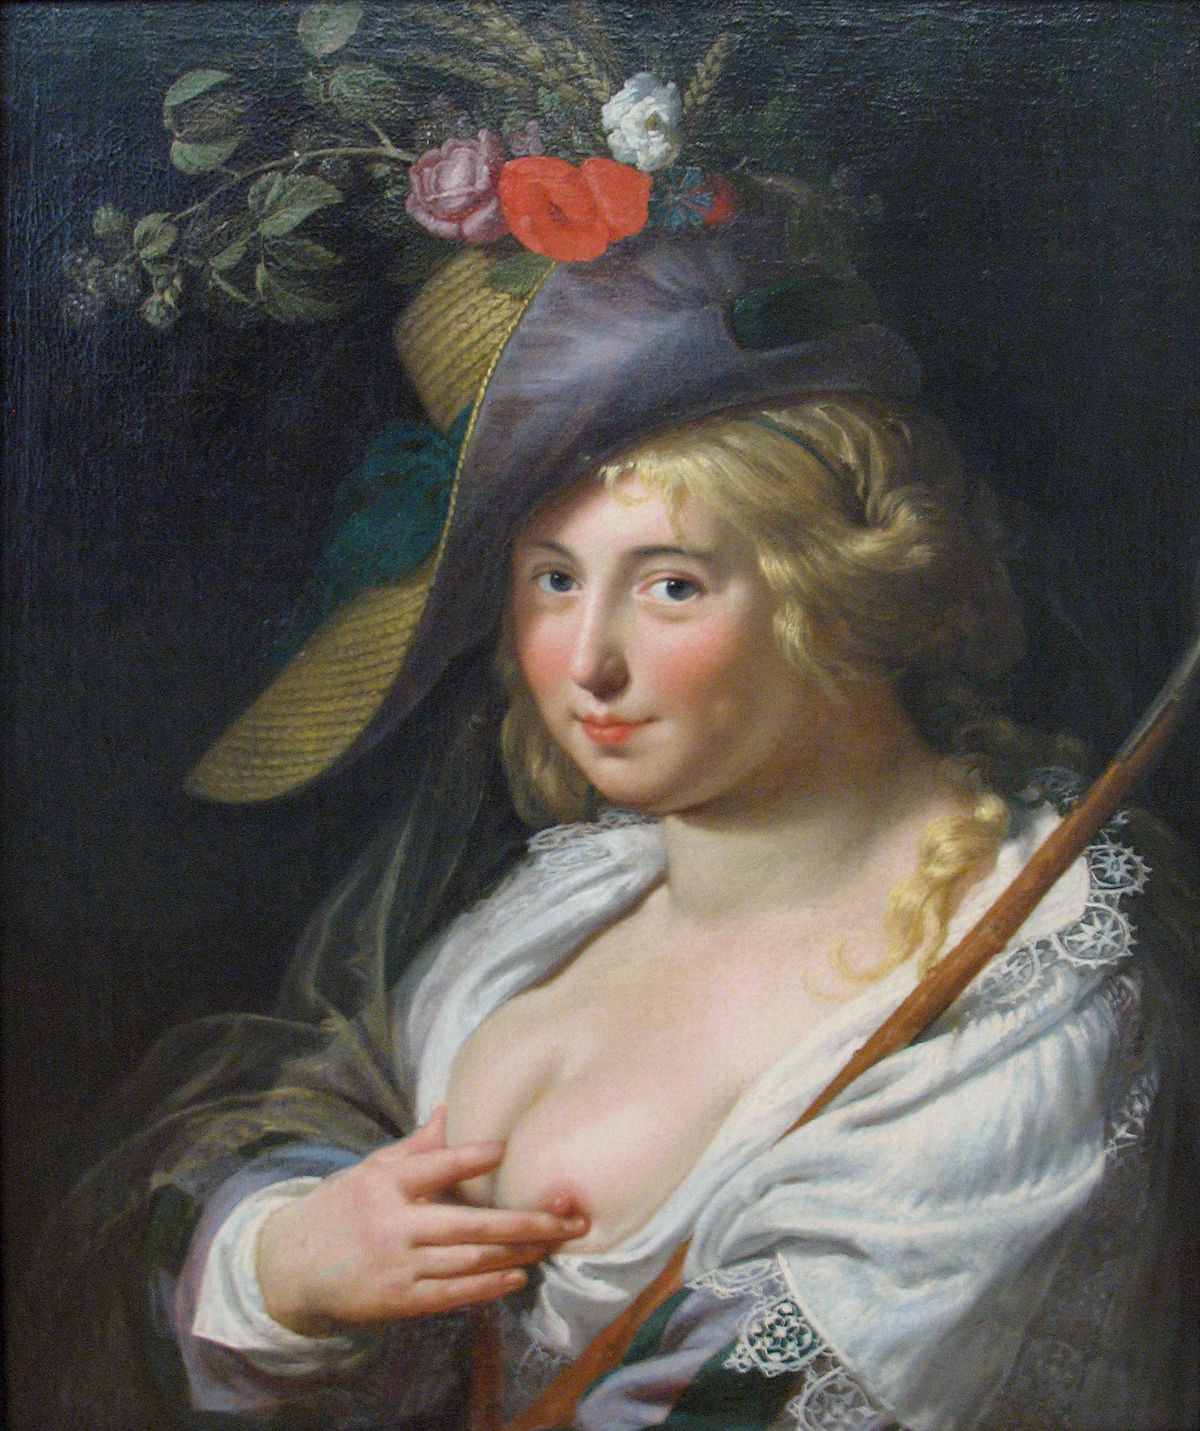 http://upload.wikimedia.org/wikipedia/commons/thumb/0/05/1624_Moreelse_Die_blonde_Schaeferin.jpg/1200px-1624_Moreelse_Die_blonde_Schaeferin.jpg